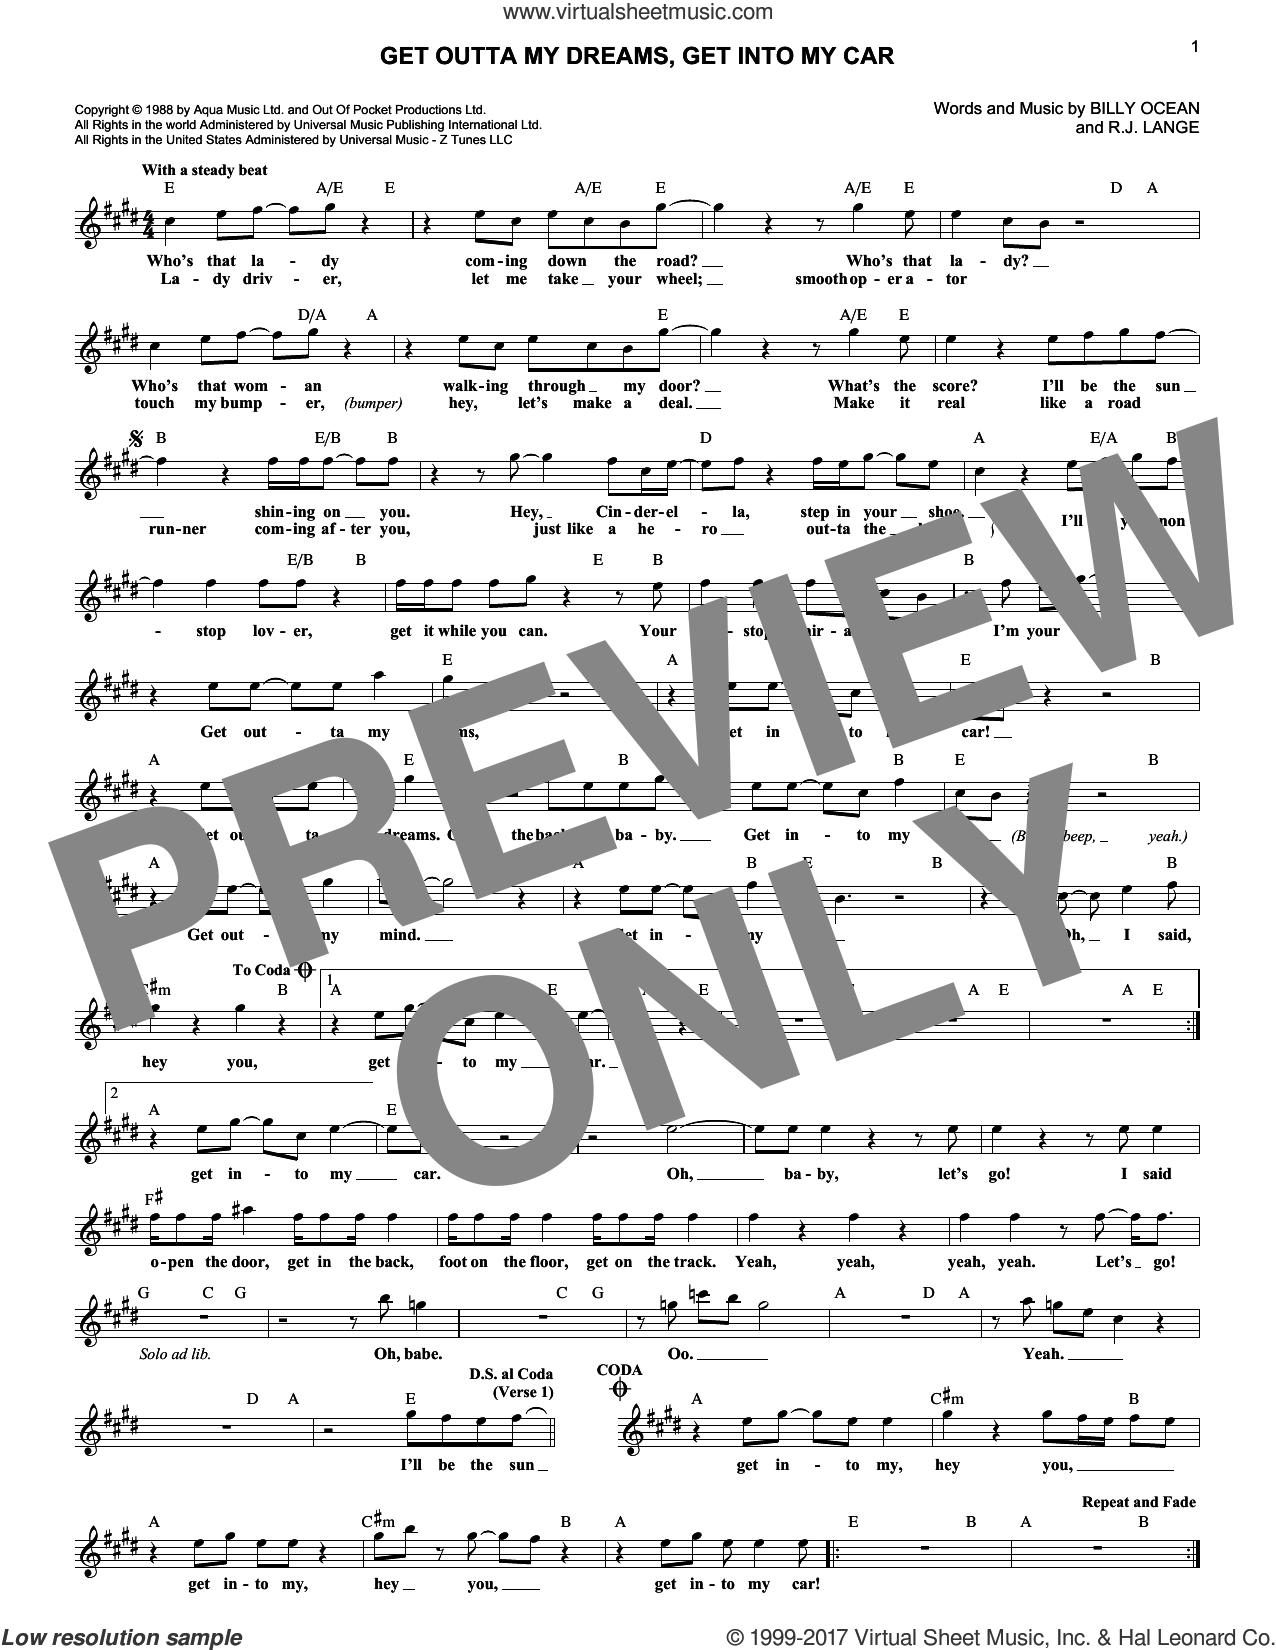 Get Outta My Dreams, Get Into My Car sheet music for voice and other instruments (fake book) by Billy Ocean and Robert John Lange, intermediate skill level